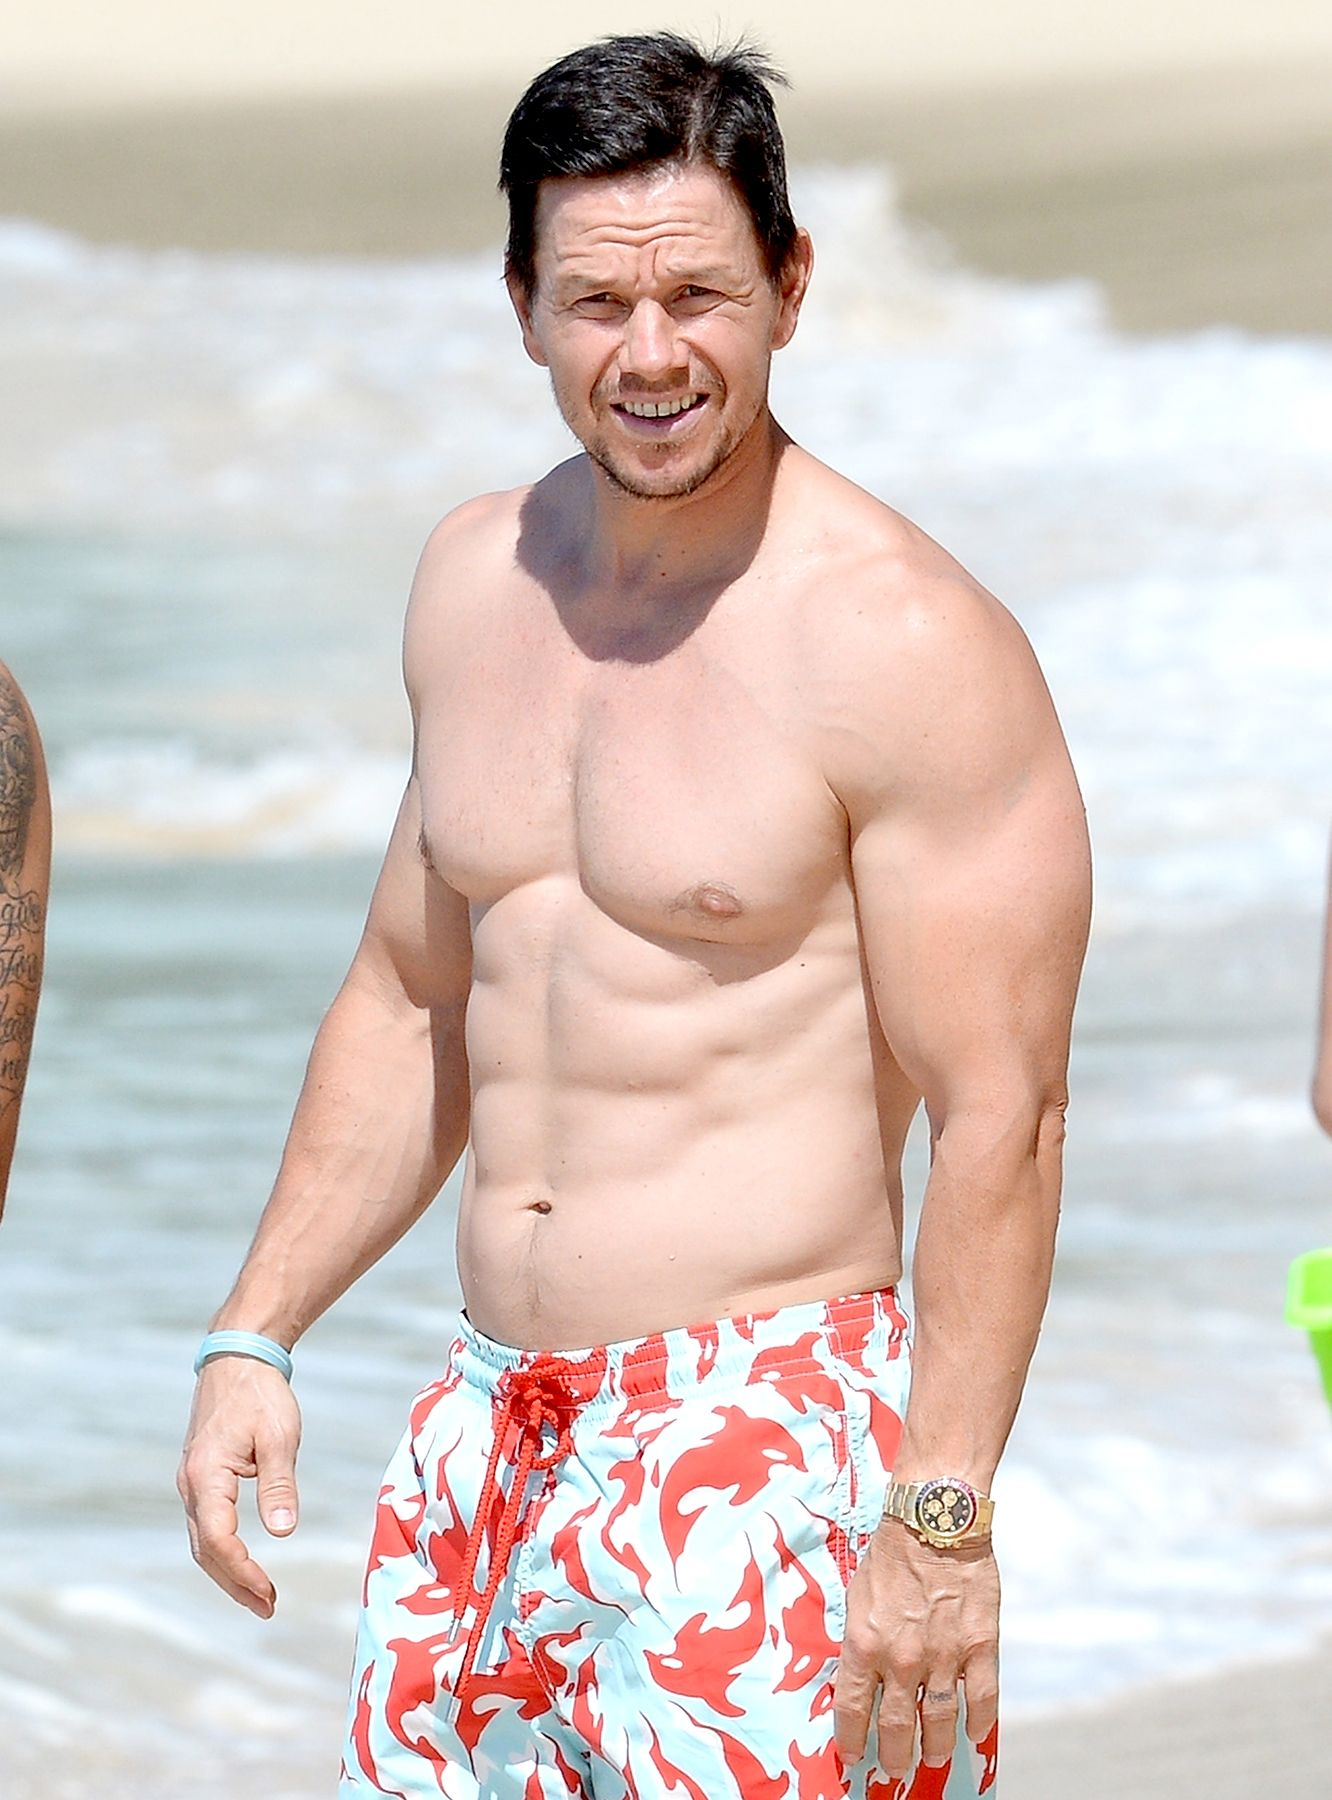 53974ebc Mark Wahlberg has been around for a long time, and he is known for being  one of Hollywood's most fit celebrity men. Click to more fit celebrity men!